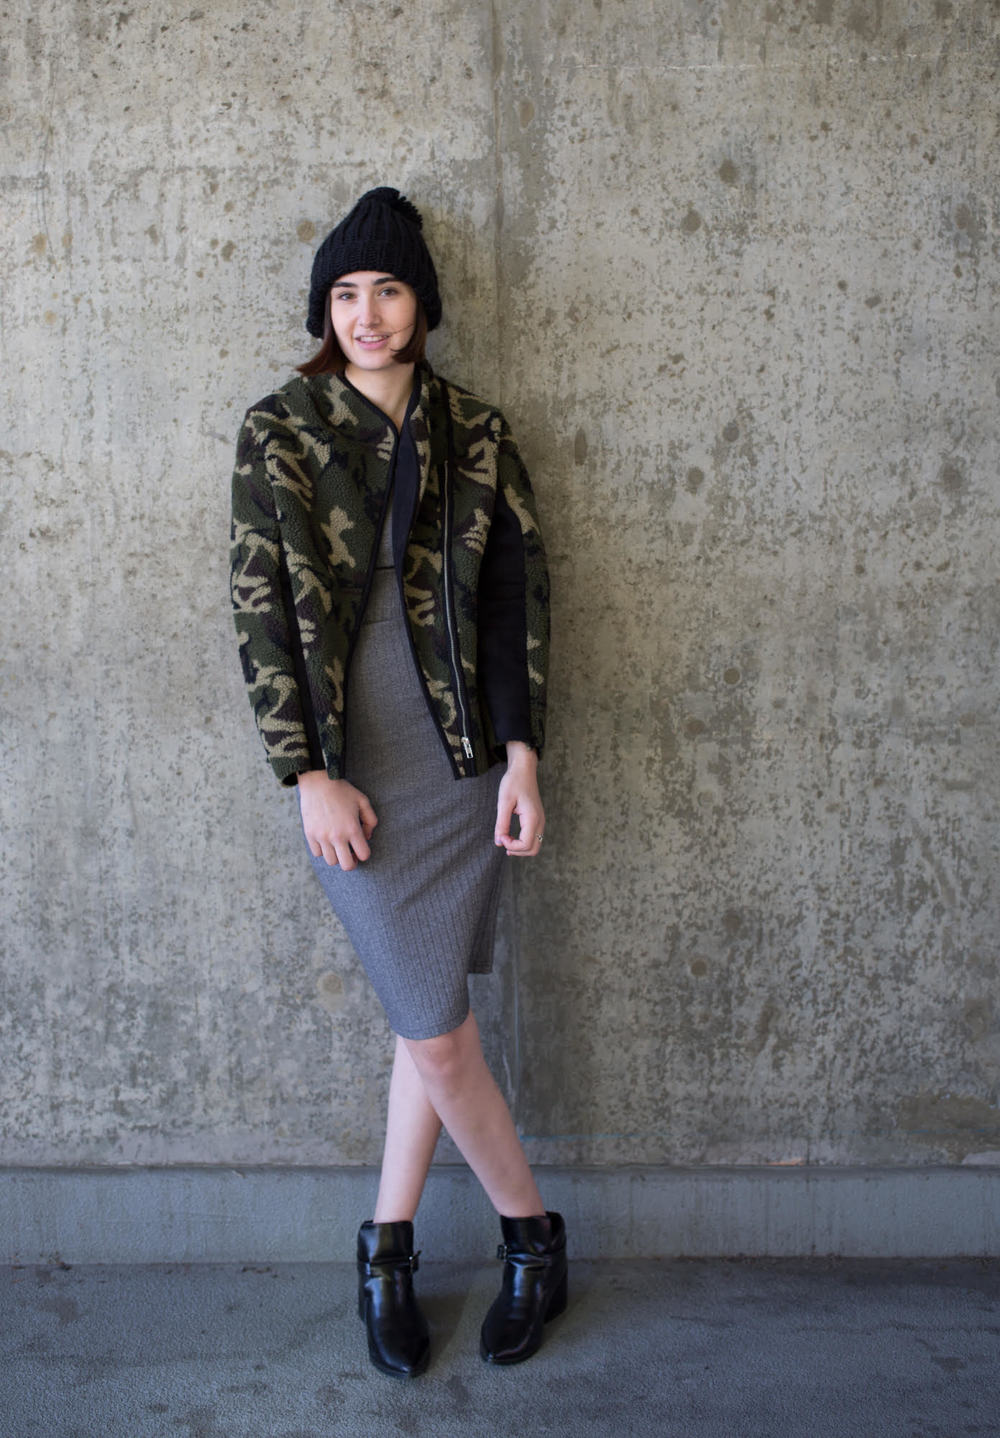 Wearing the BLQ  Bow Shearling Camo  Jacket, Knot Sisters ribbed body con dress, and Pipe and Row Staples Oversized Pom Beanie.